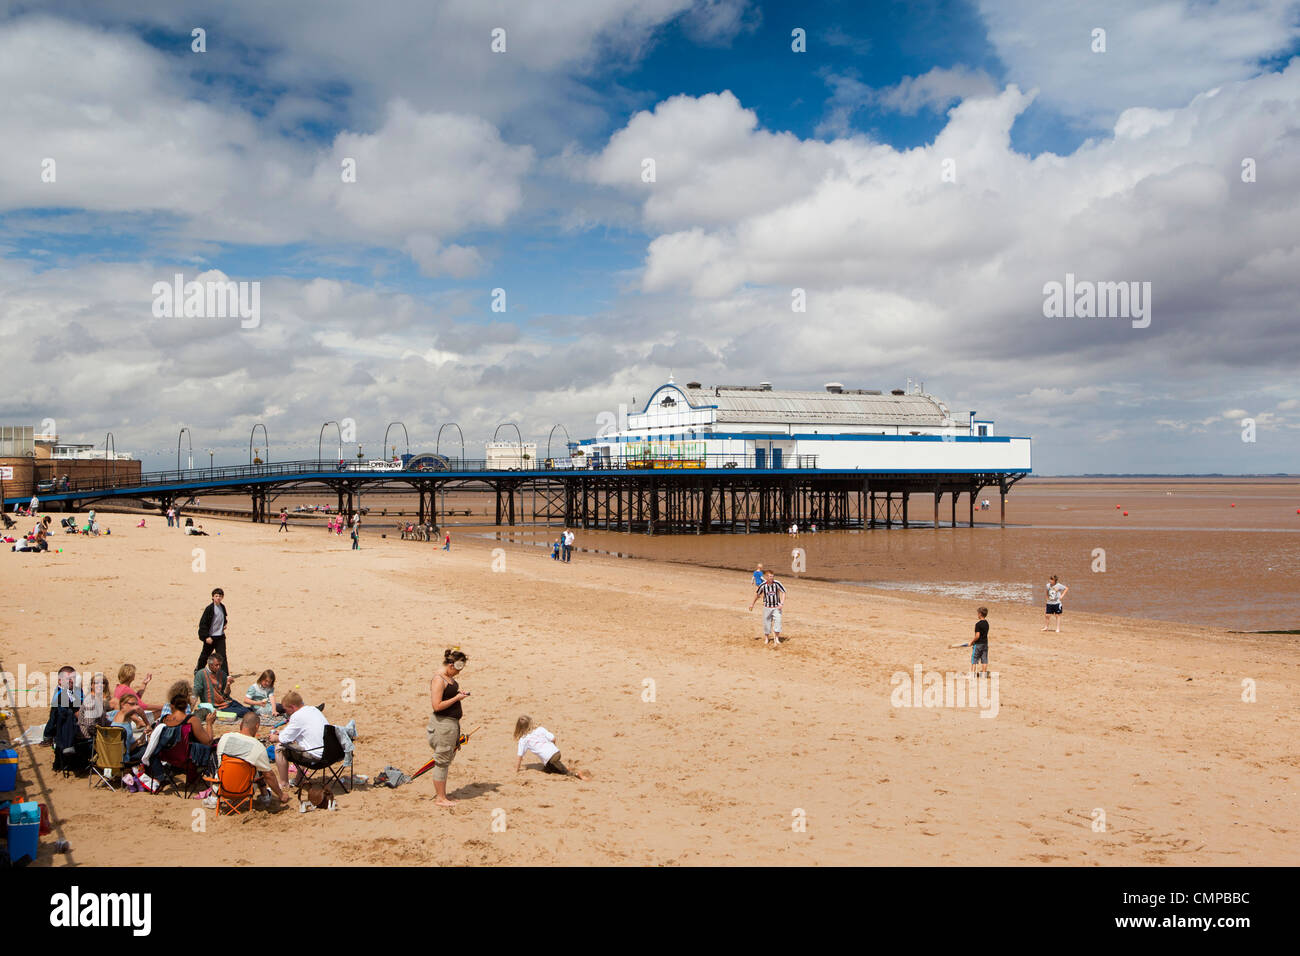 UK, England, Lincolnshire, Cleethorpes, visitors relaxing on beach in summer sunshine - Stock Image